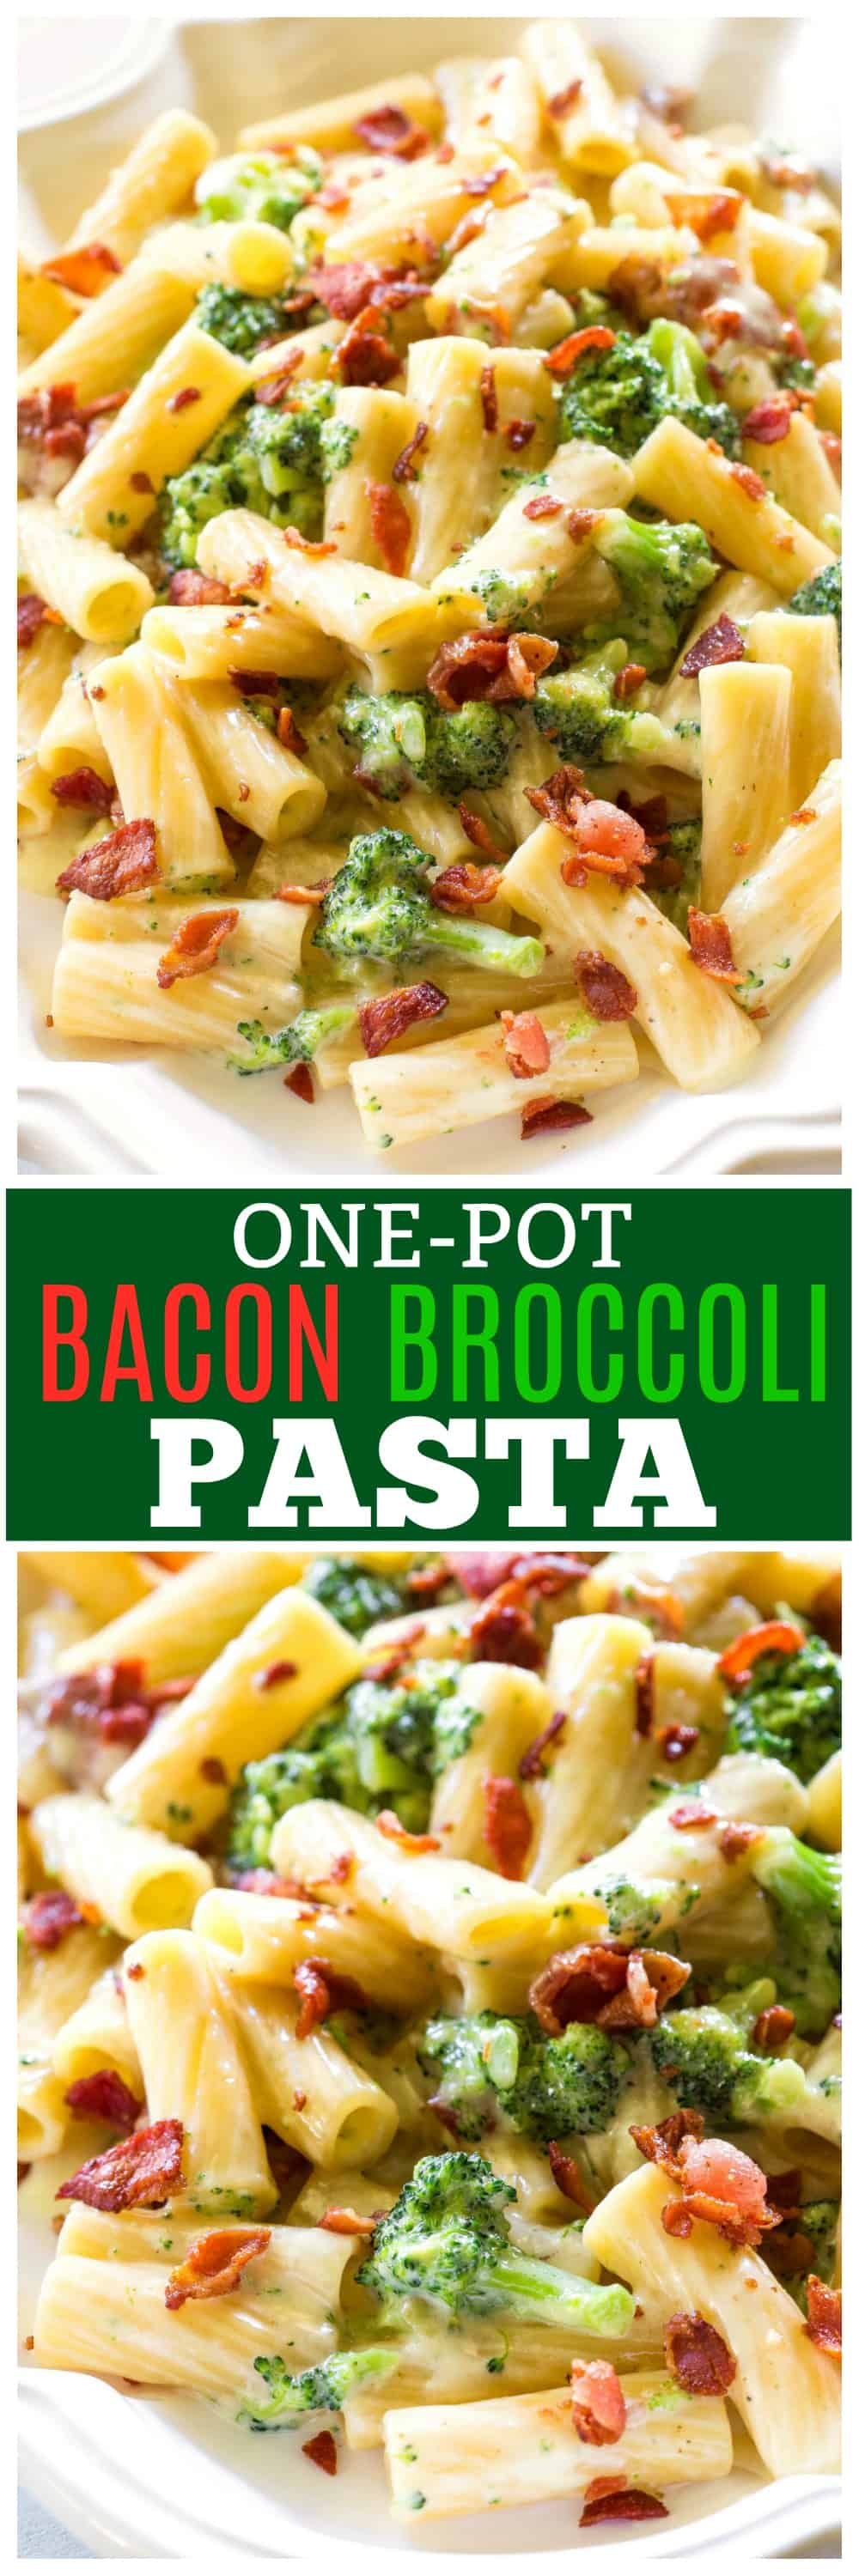 One-Pot Bacon Broccoli Pasta